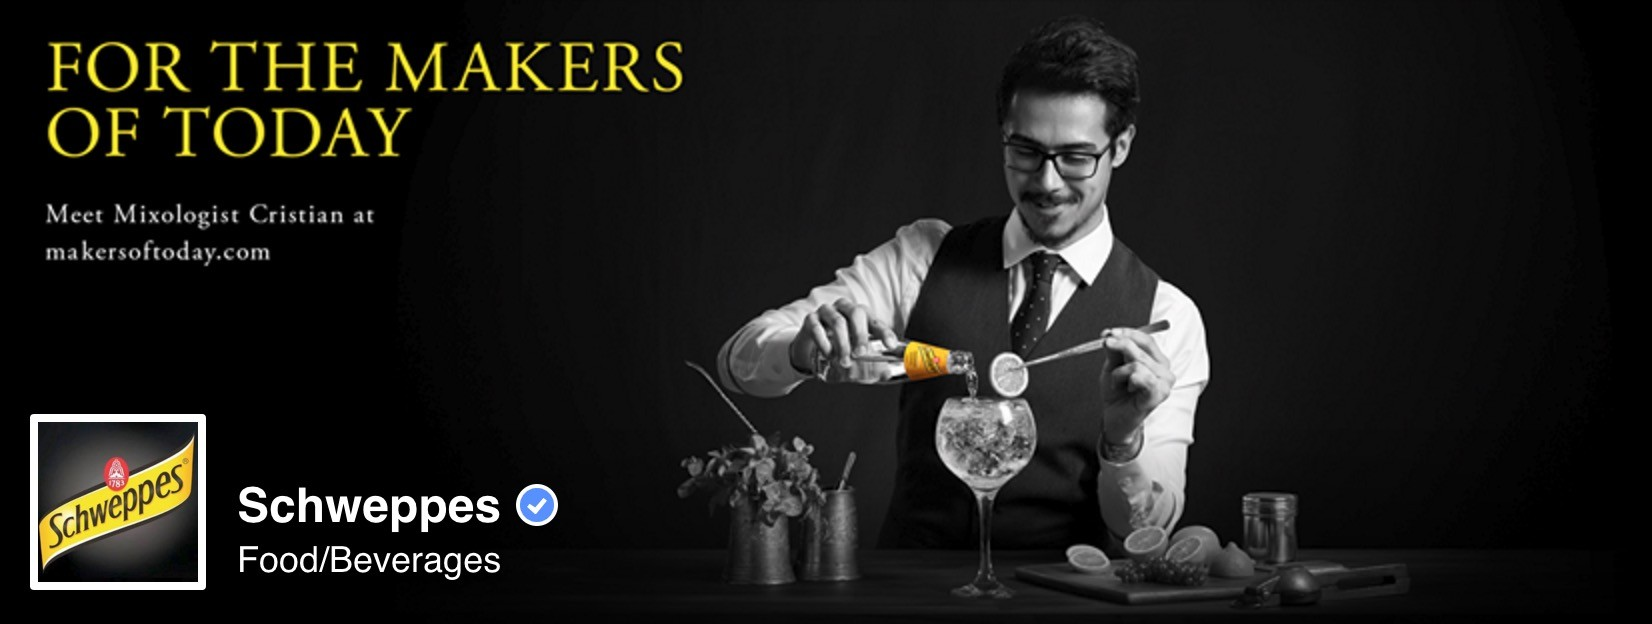 schweppes-facebook-cover-photo